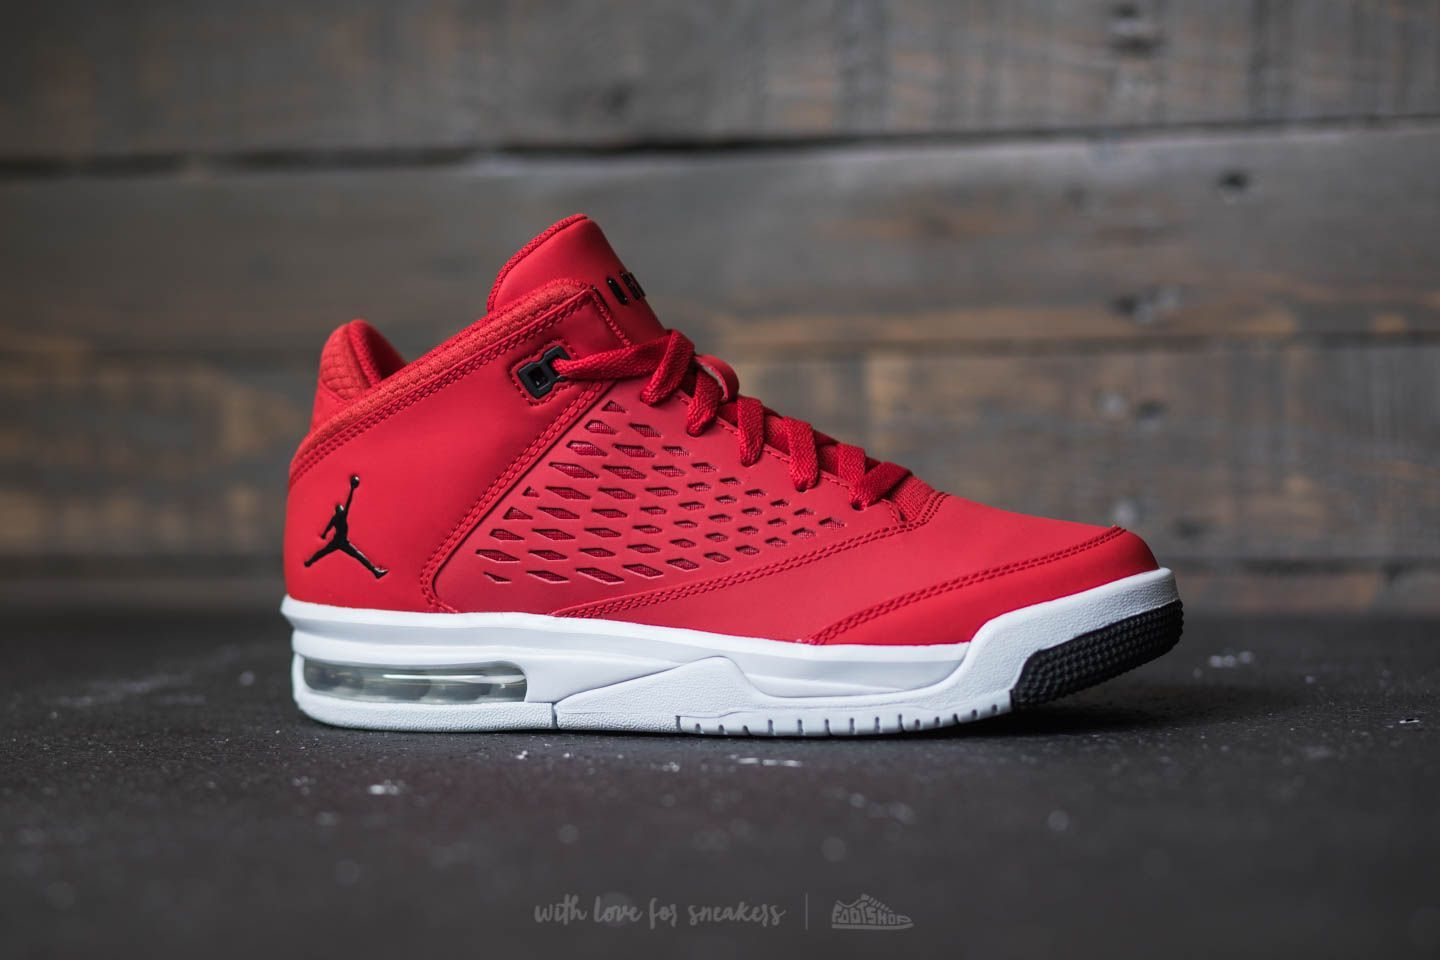 meet 5290f dbaa6 Jordan Flight Origin 4 BG Gym Red  Black-Pure Platinum at a great price 92  € buy at Footshop